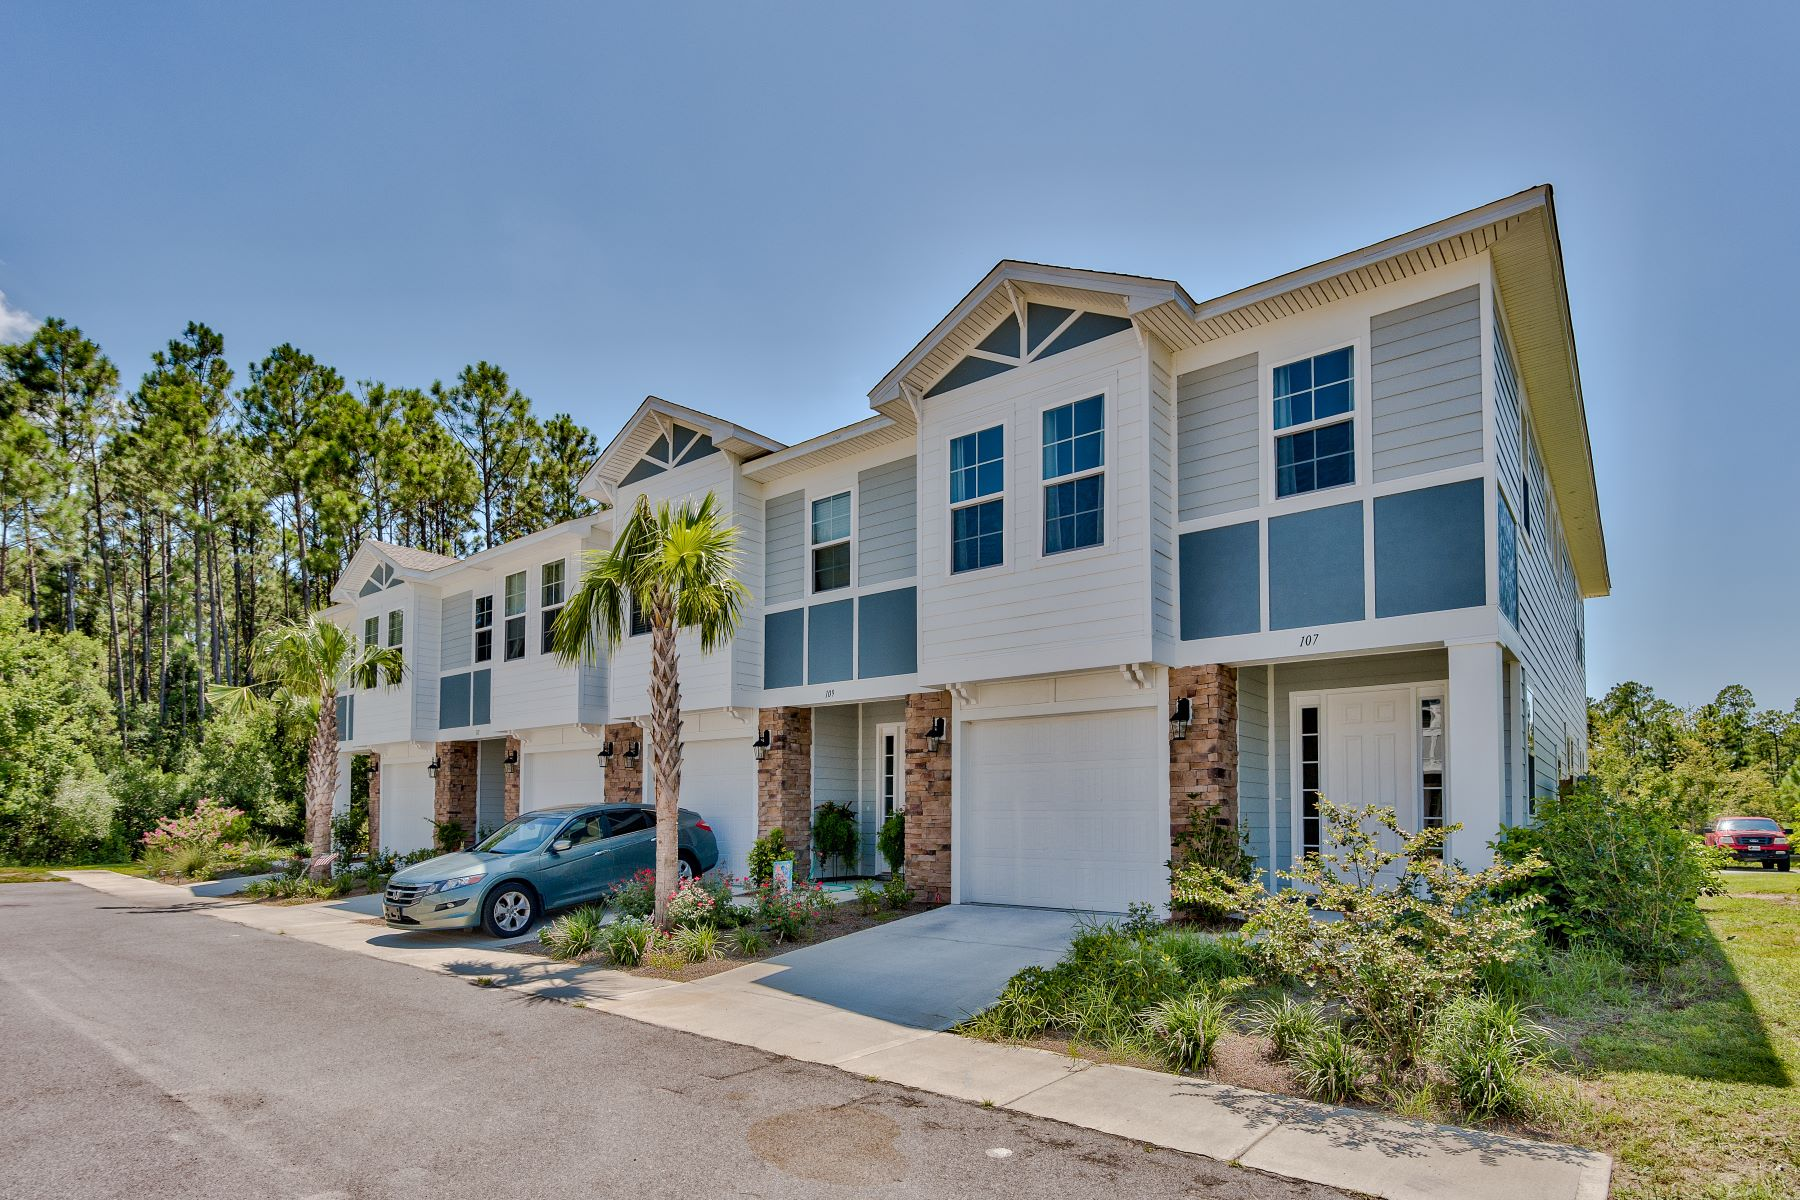 townhouses für Verkauf beim Impeccable Townhome East of Pier Park with Community Pool 107 Enchantment Falls Lane, Panama City Beach, Florida 32407 Vereinigte Staaten